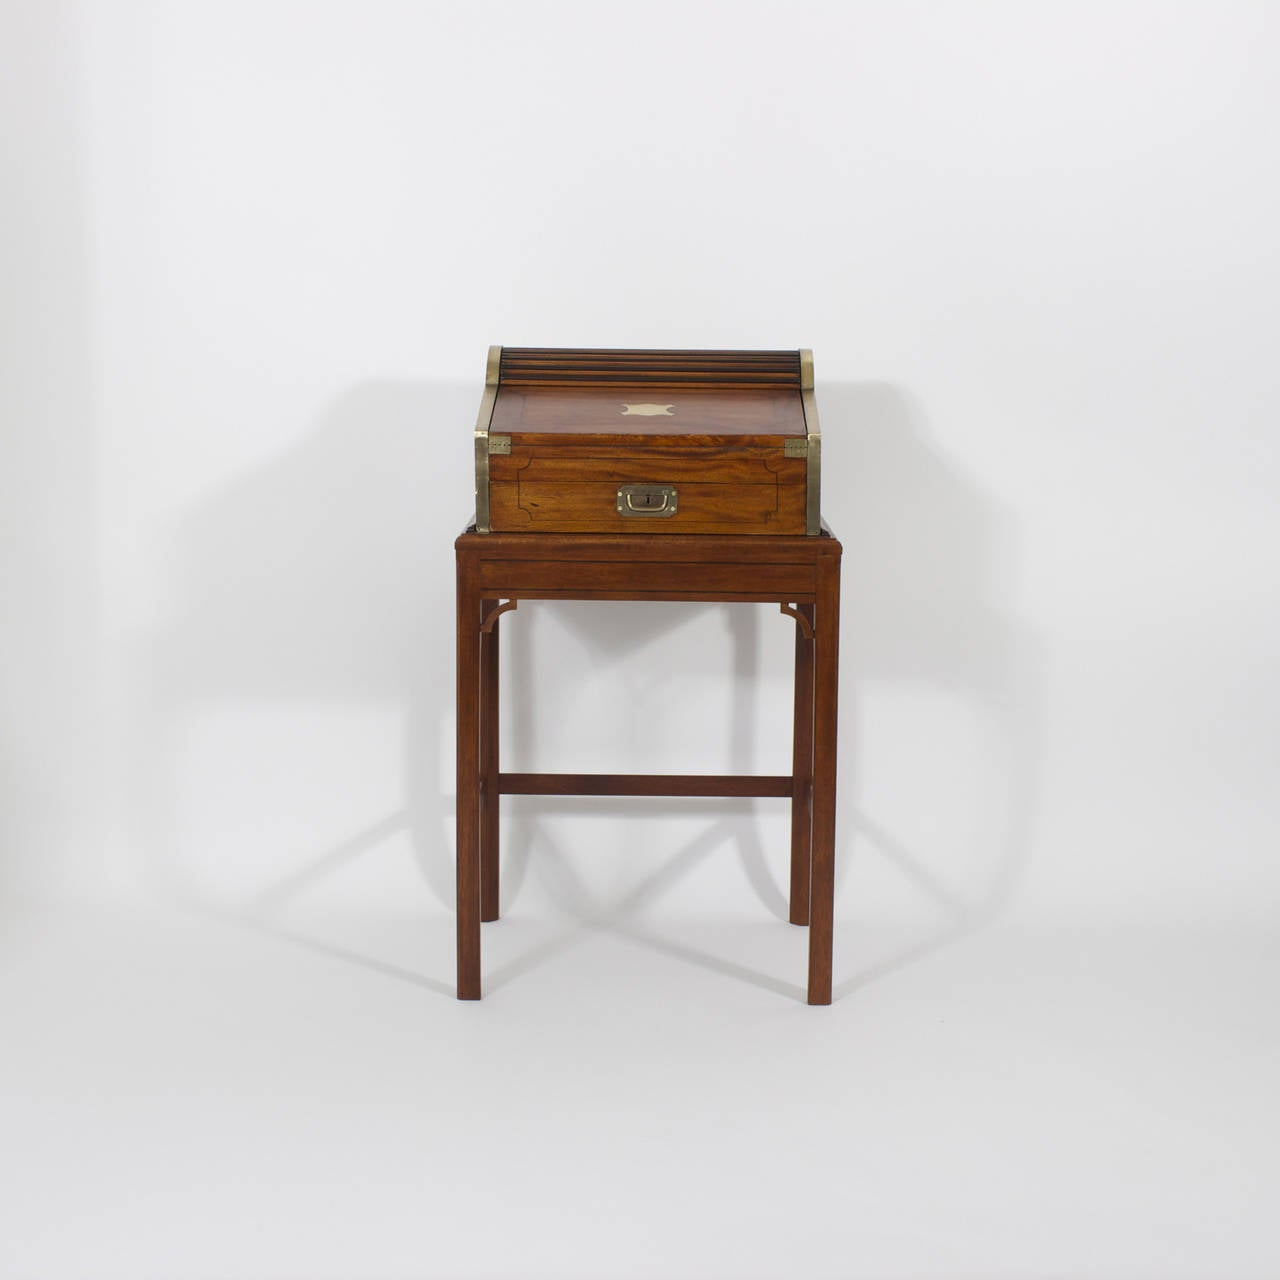 A 19th century diminutive, antique, mahogany campaign roll top desk on stand with brass plaque, brass lined case, string inlay, intriguing pop up hidden compartments, brass recessed campaign hardware and well proportioned custom stand. Newly